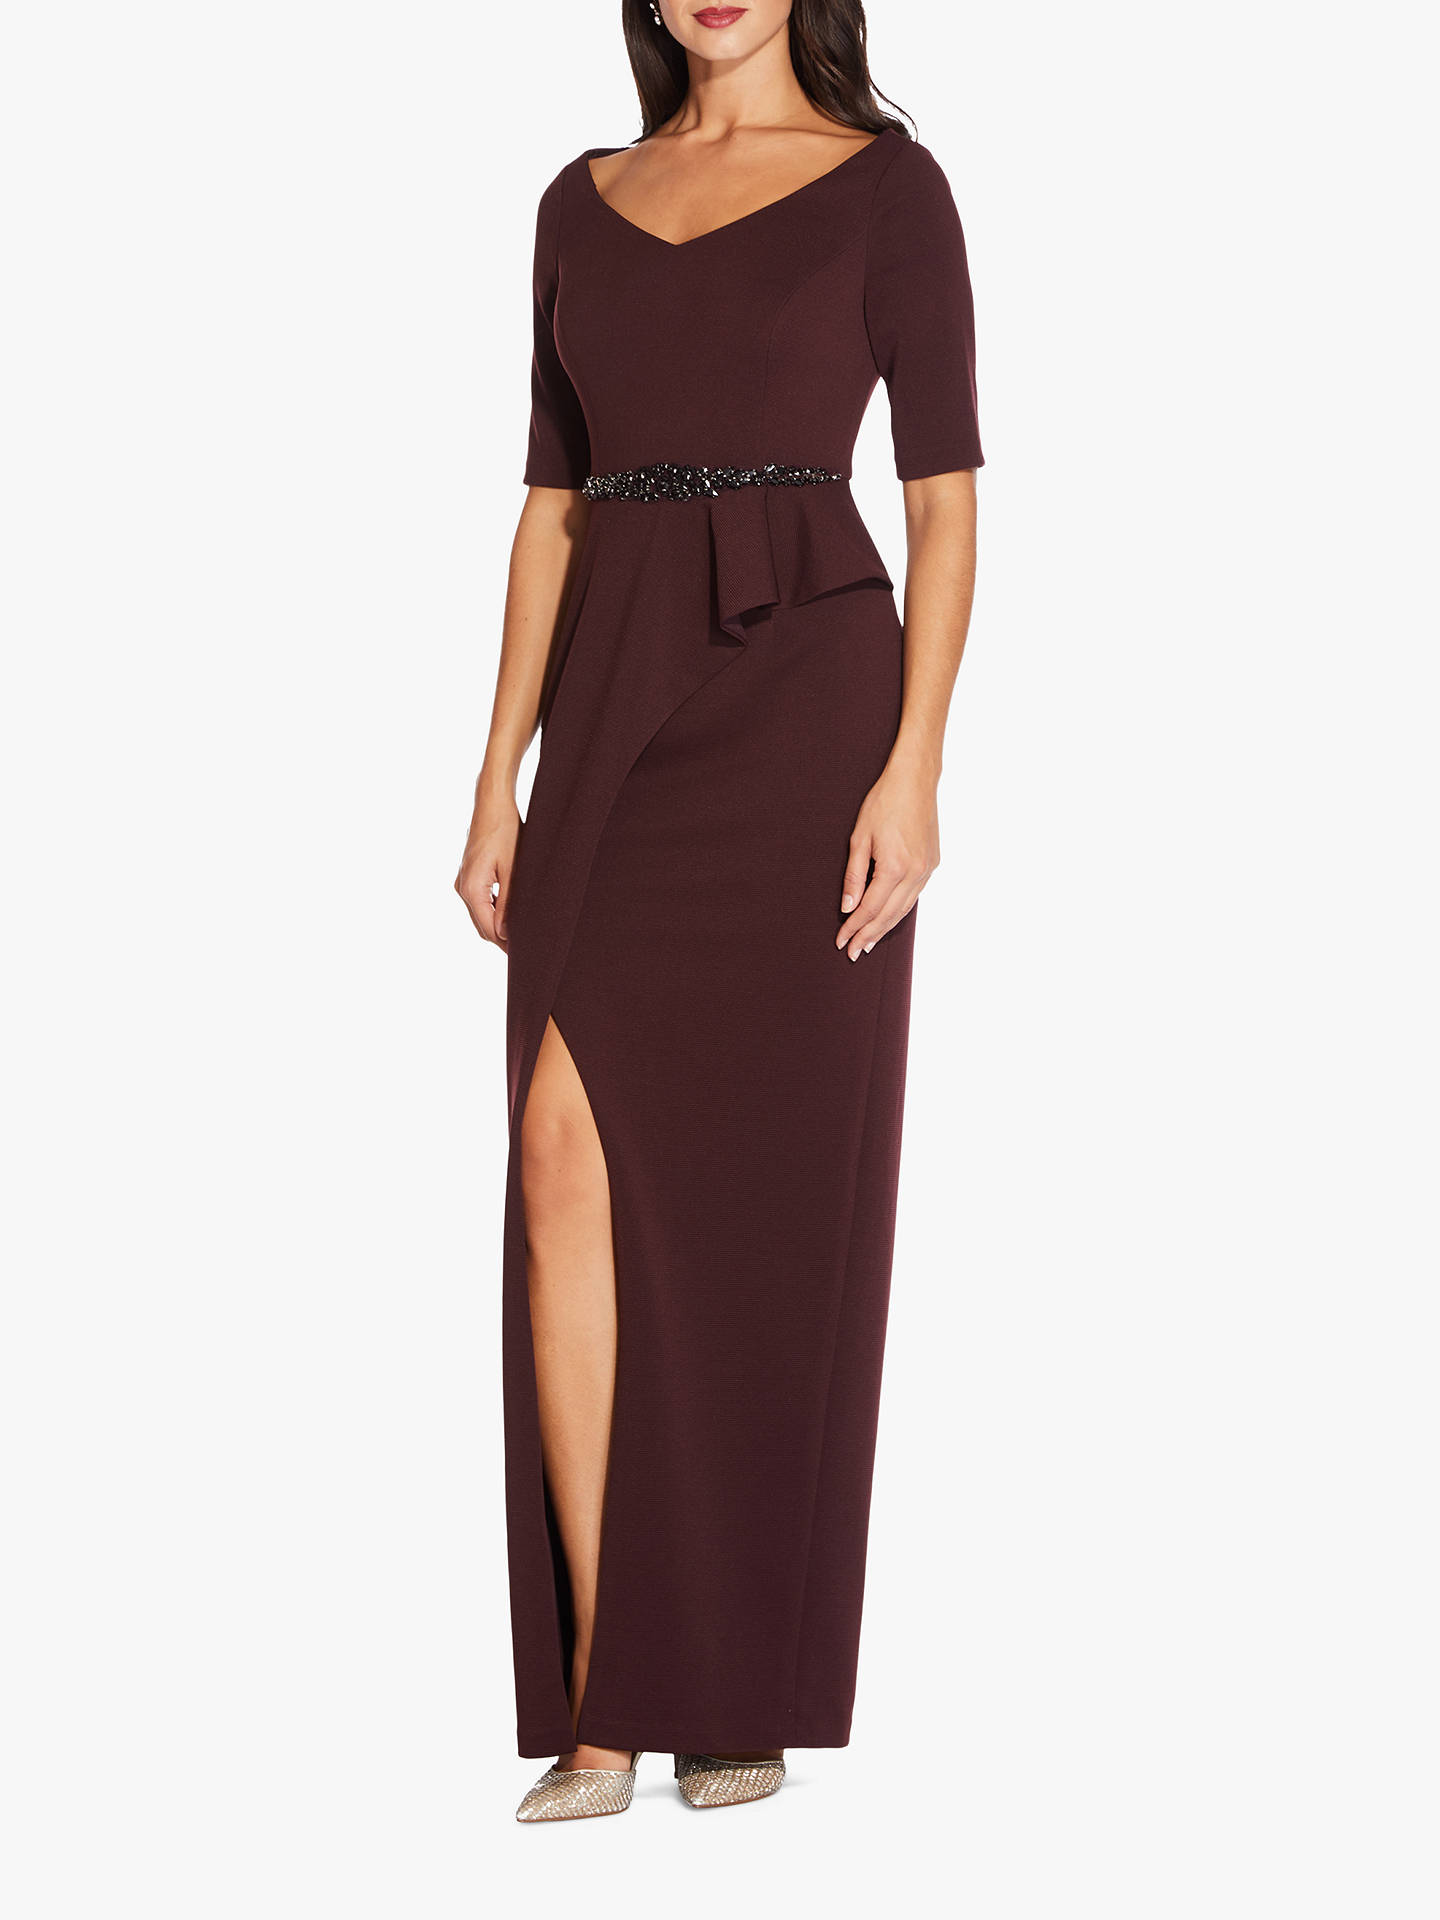 Buy Adrianna Papell Long Knit Embellished Waist Dress, Blackberry Wine, 10 Online at johnlewis.com